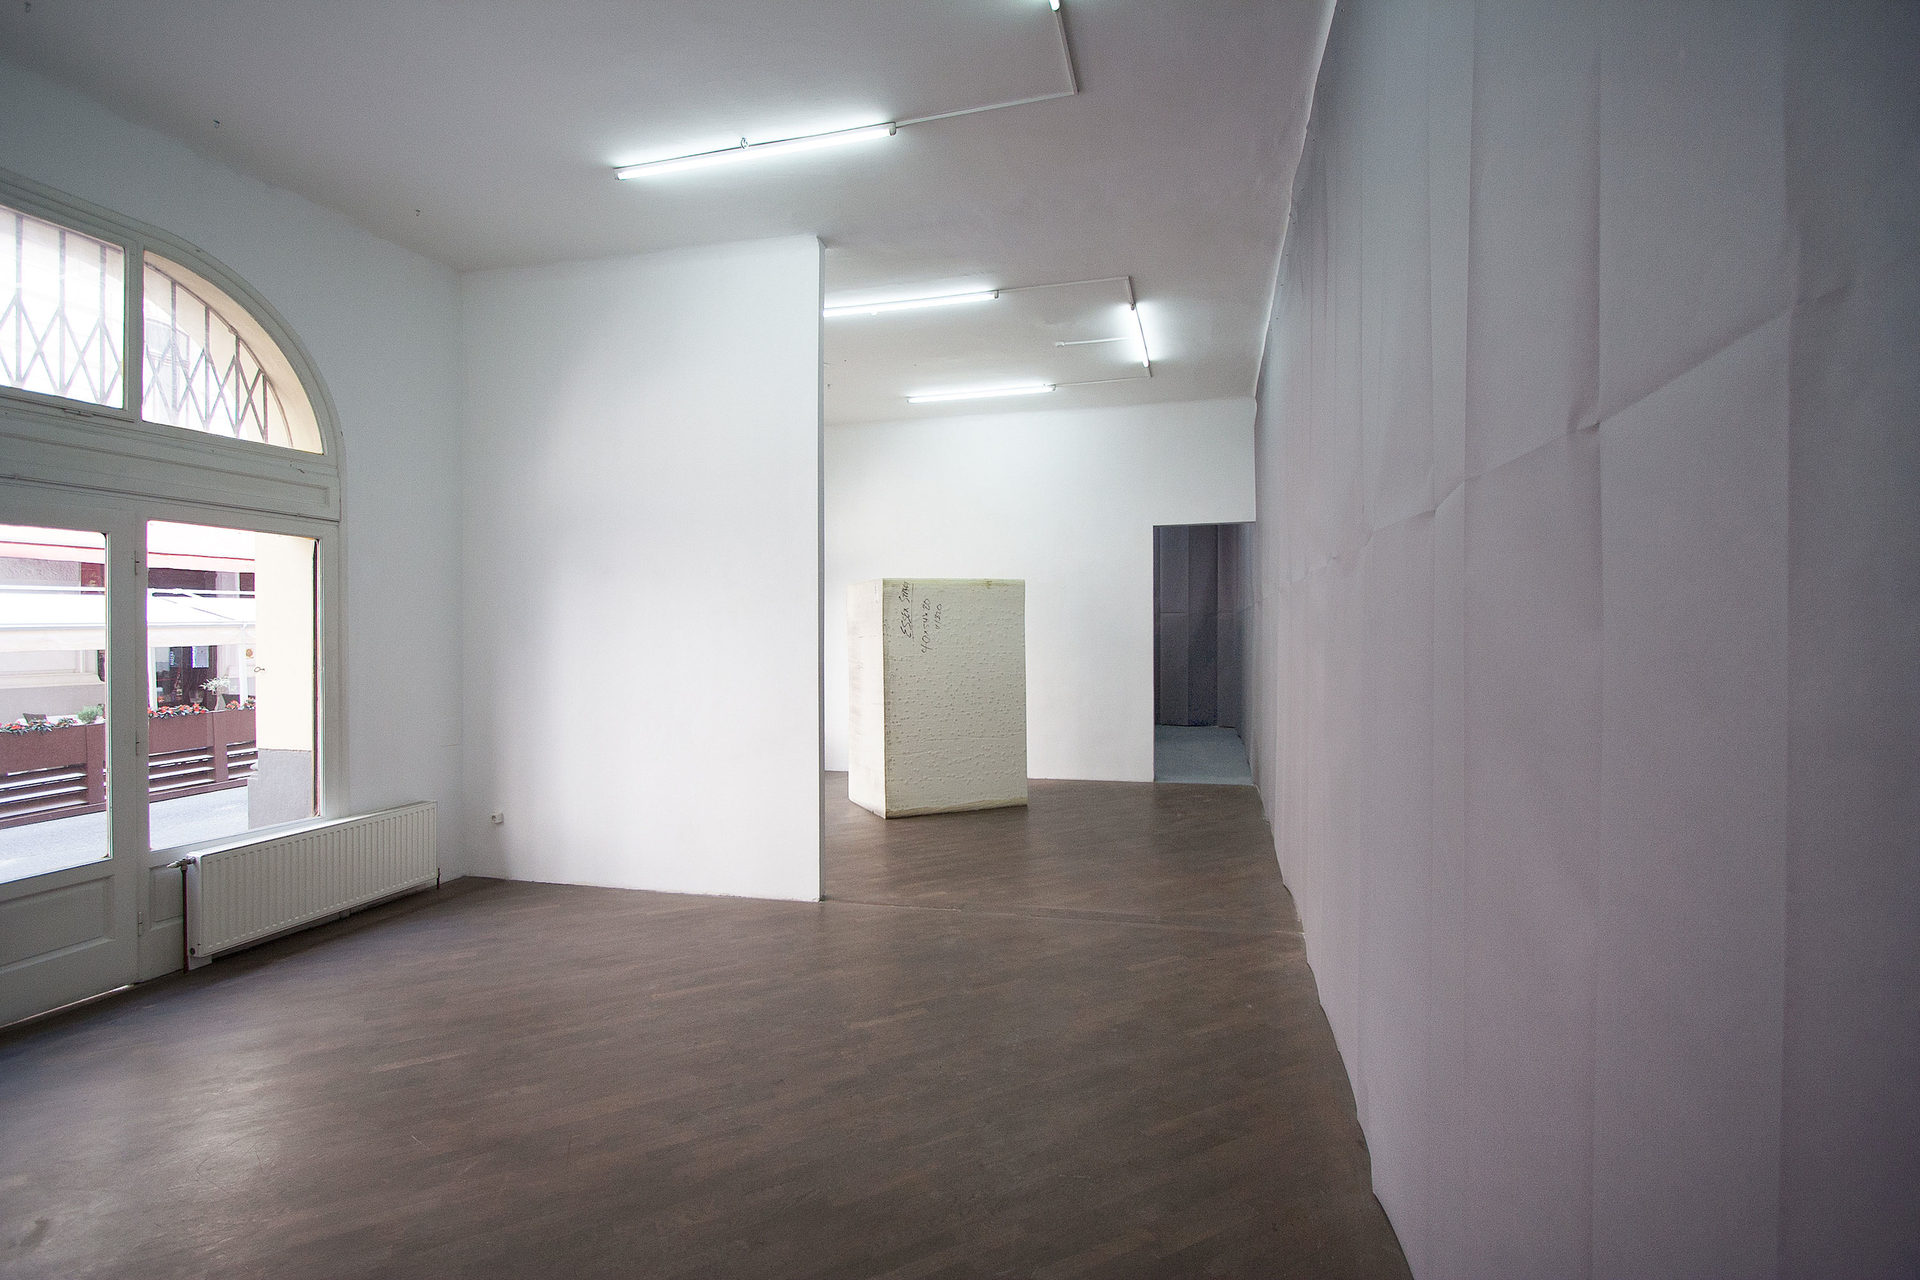 #3-Gerber_McArthur_Nutt_-final-installation-view